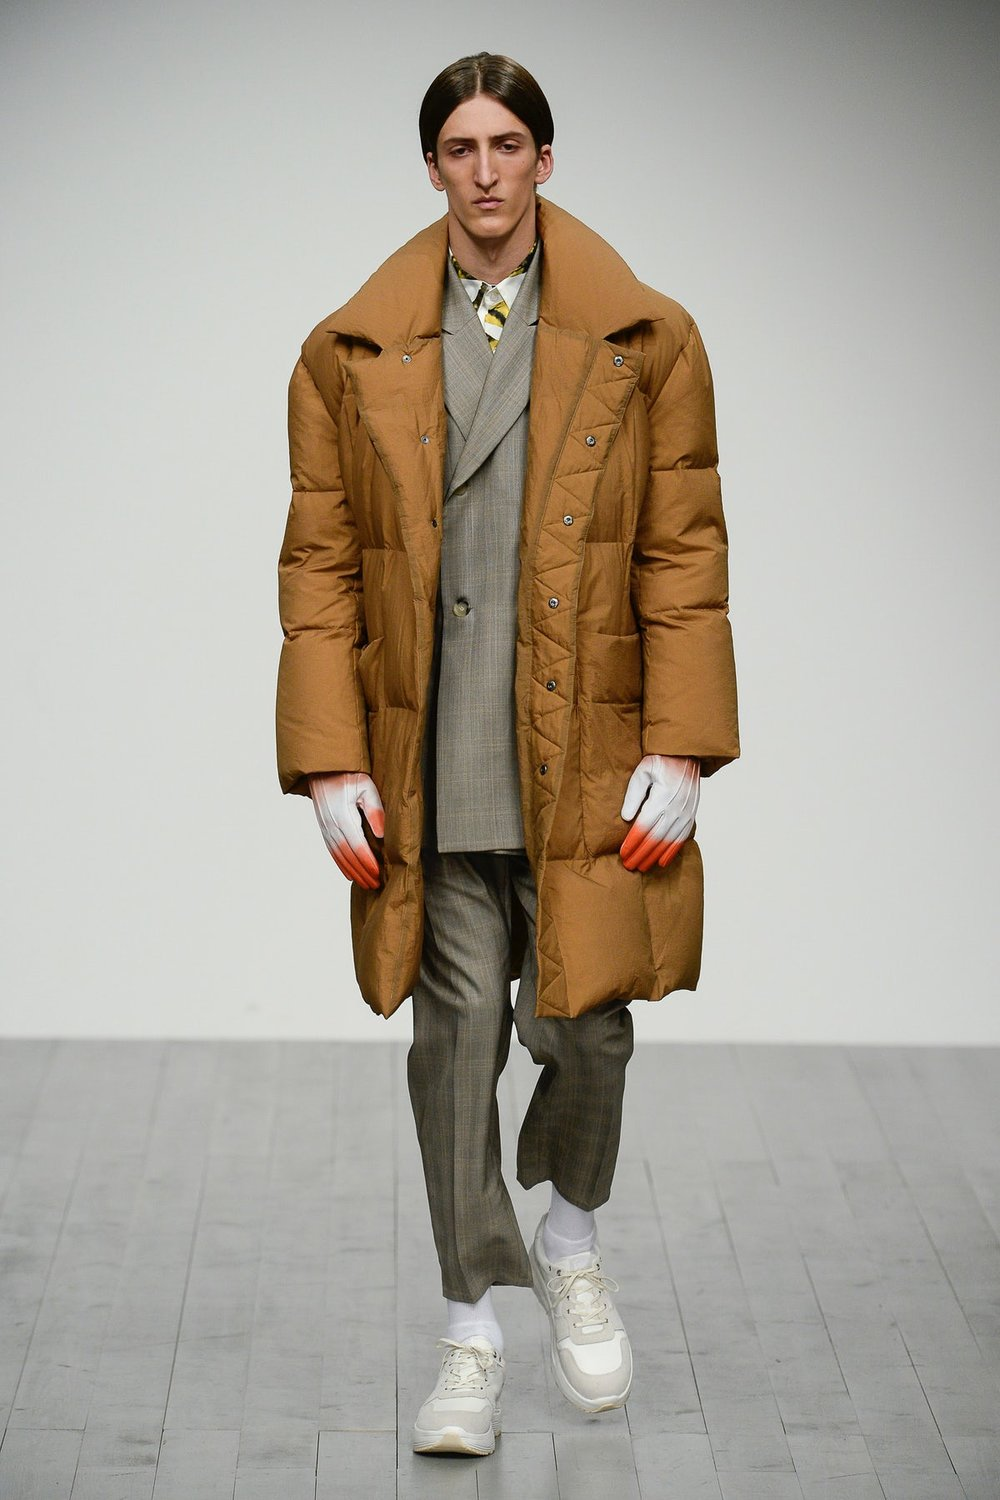 alex_mullins_look_6_menswear_autumn_2018.jpeg